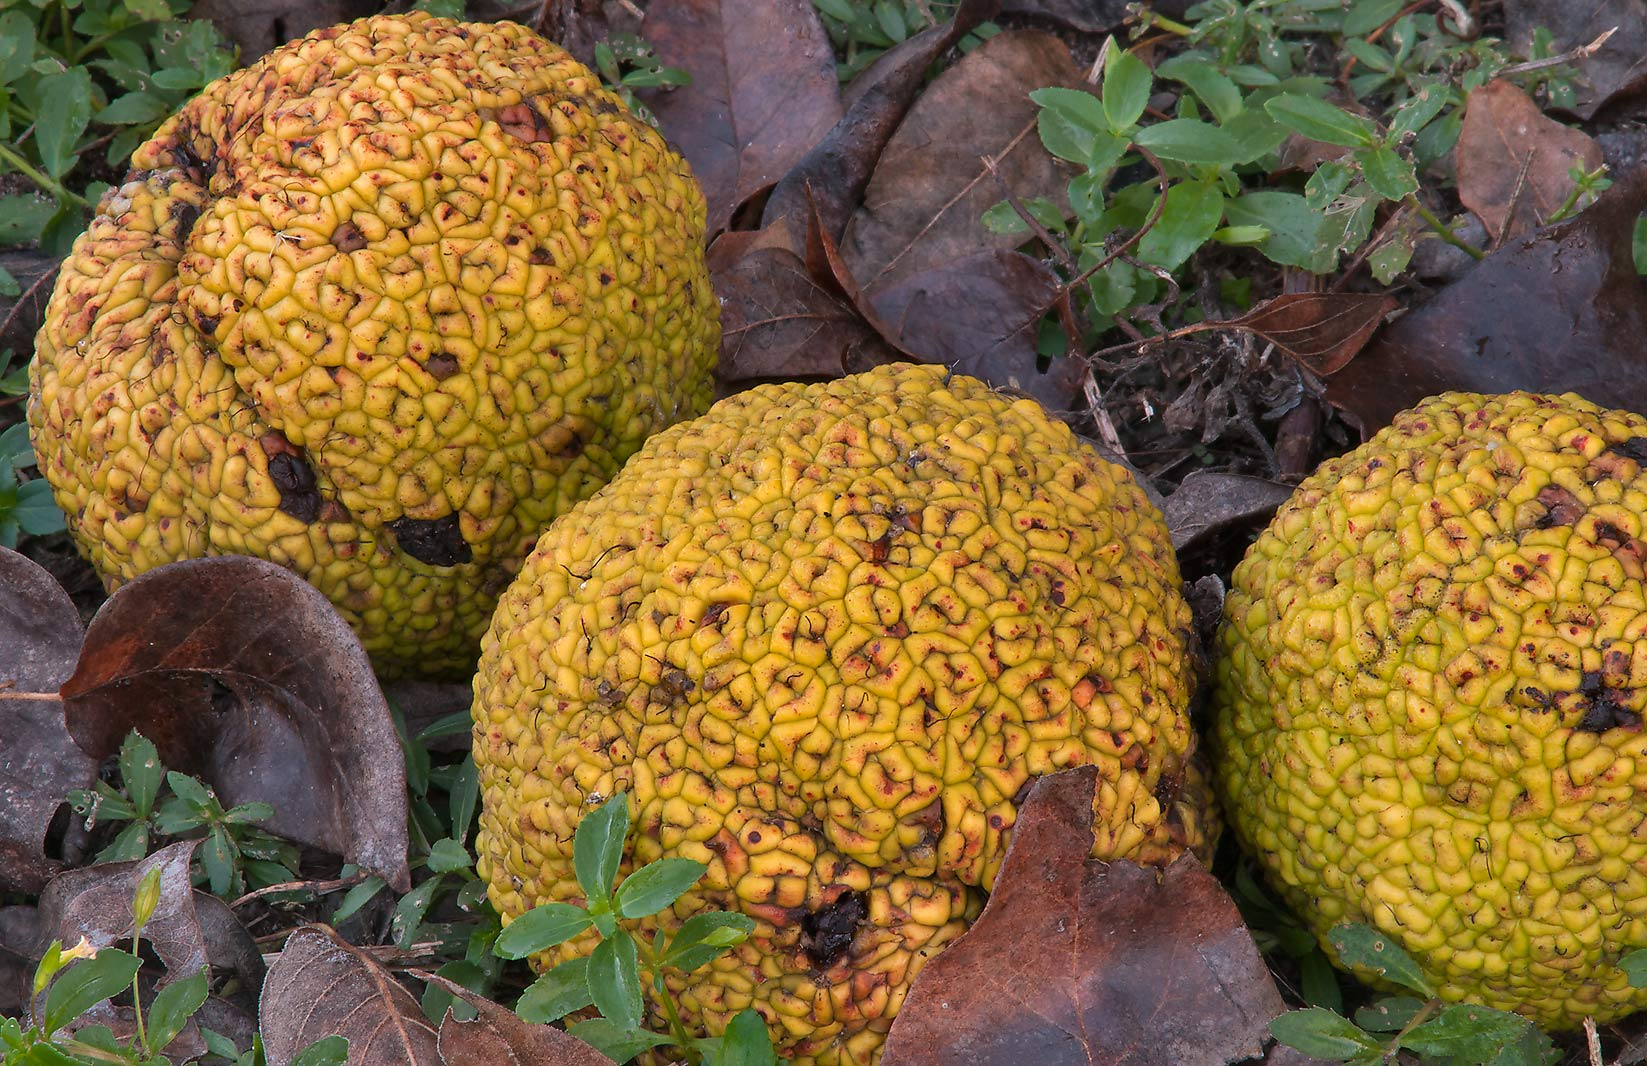 Horse apples (osage orange) near a pond in...State Historic Site. Washington, Texas